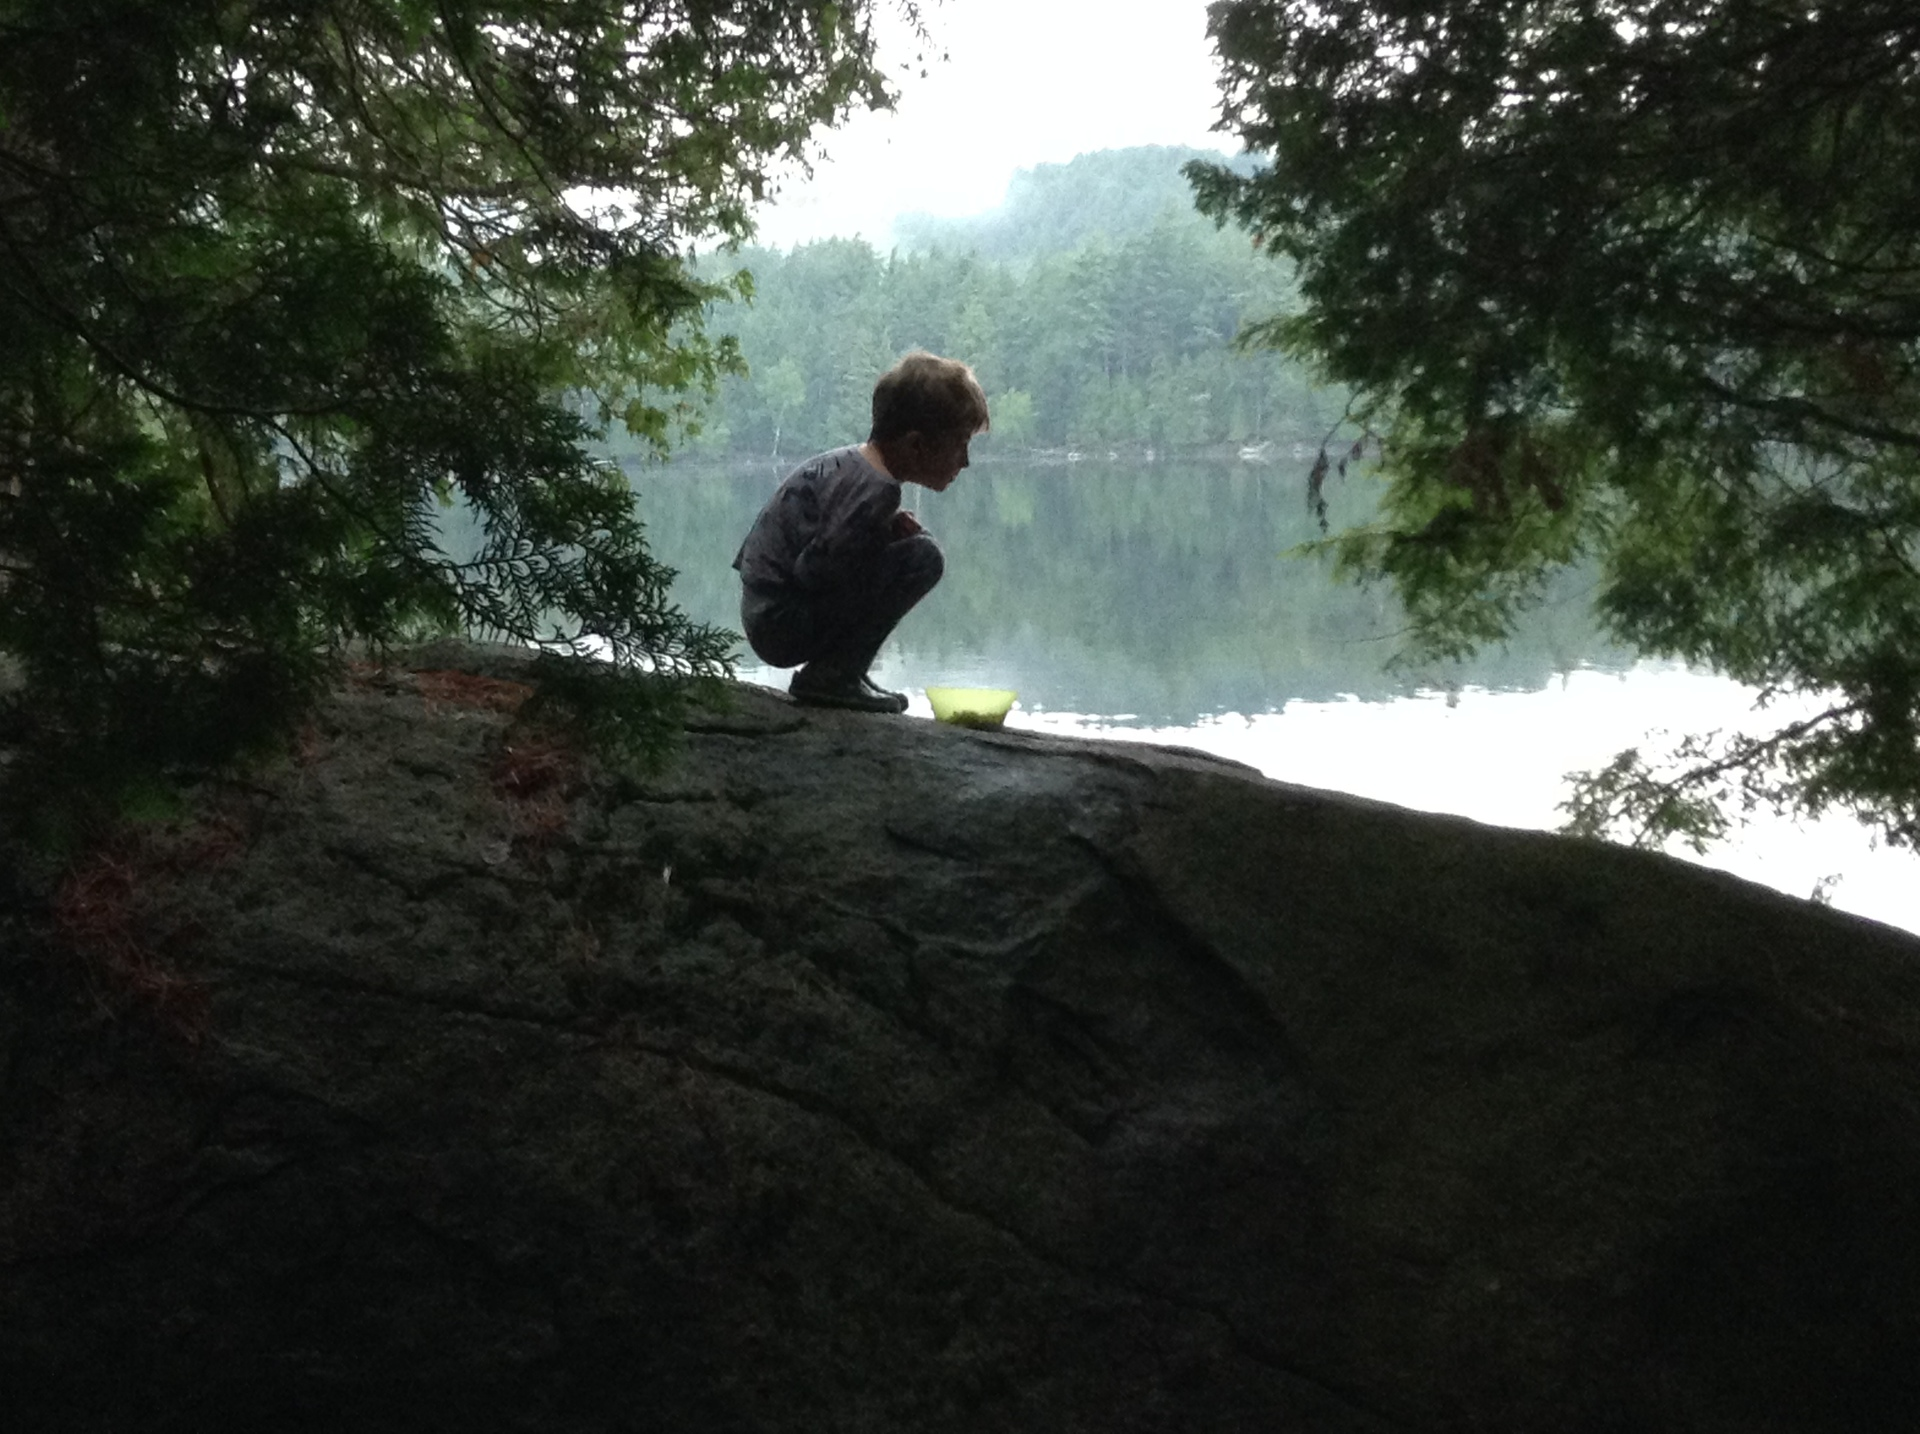 Squirrel boy. Breakfast in pajamas on the rock during a family cannot trip